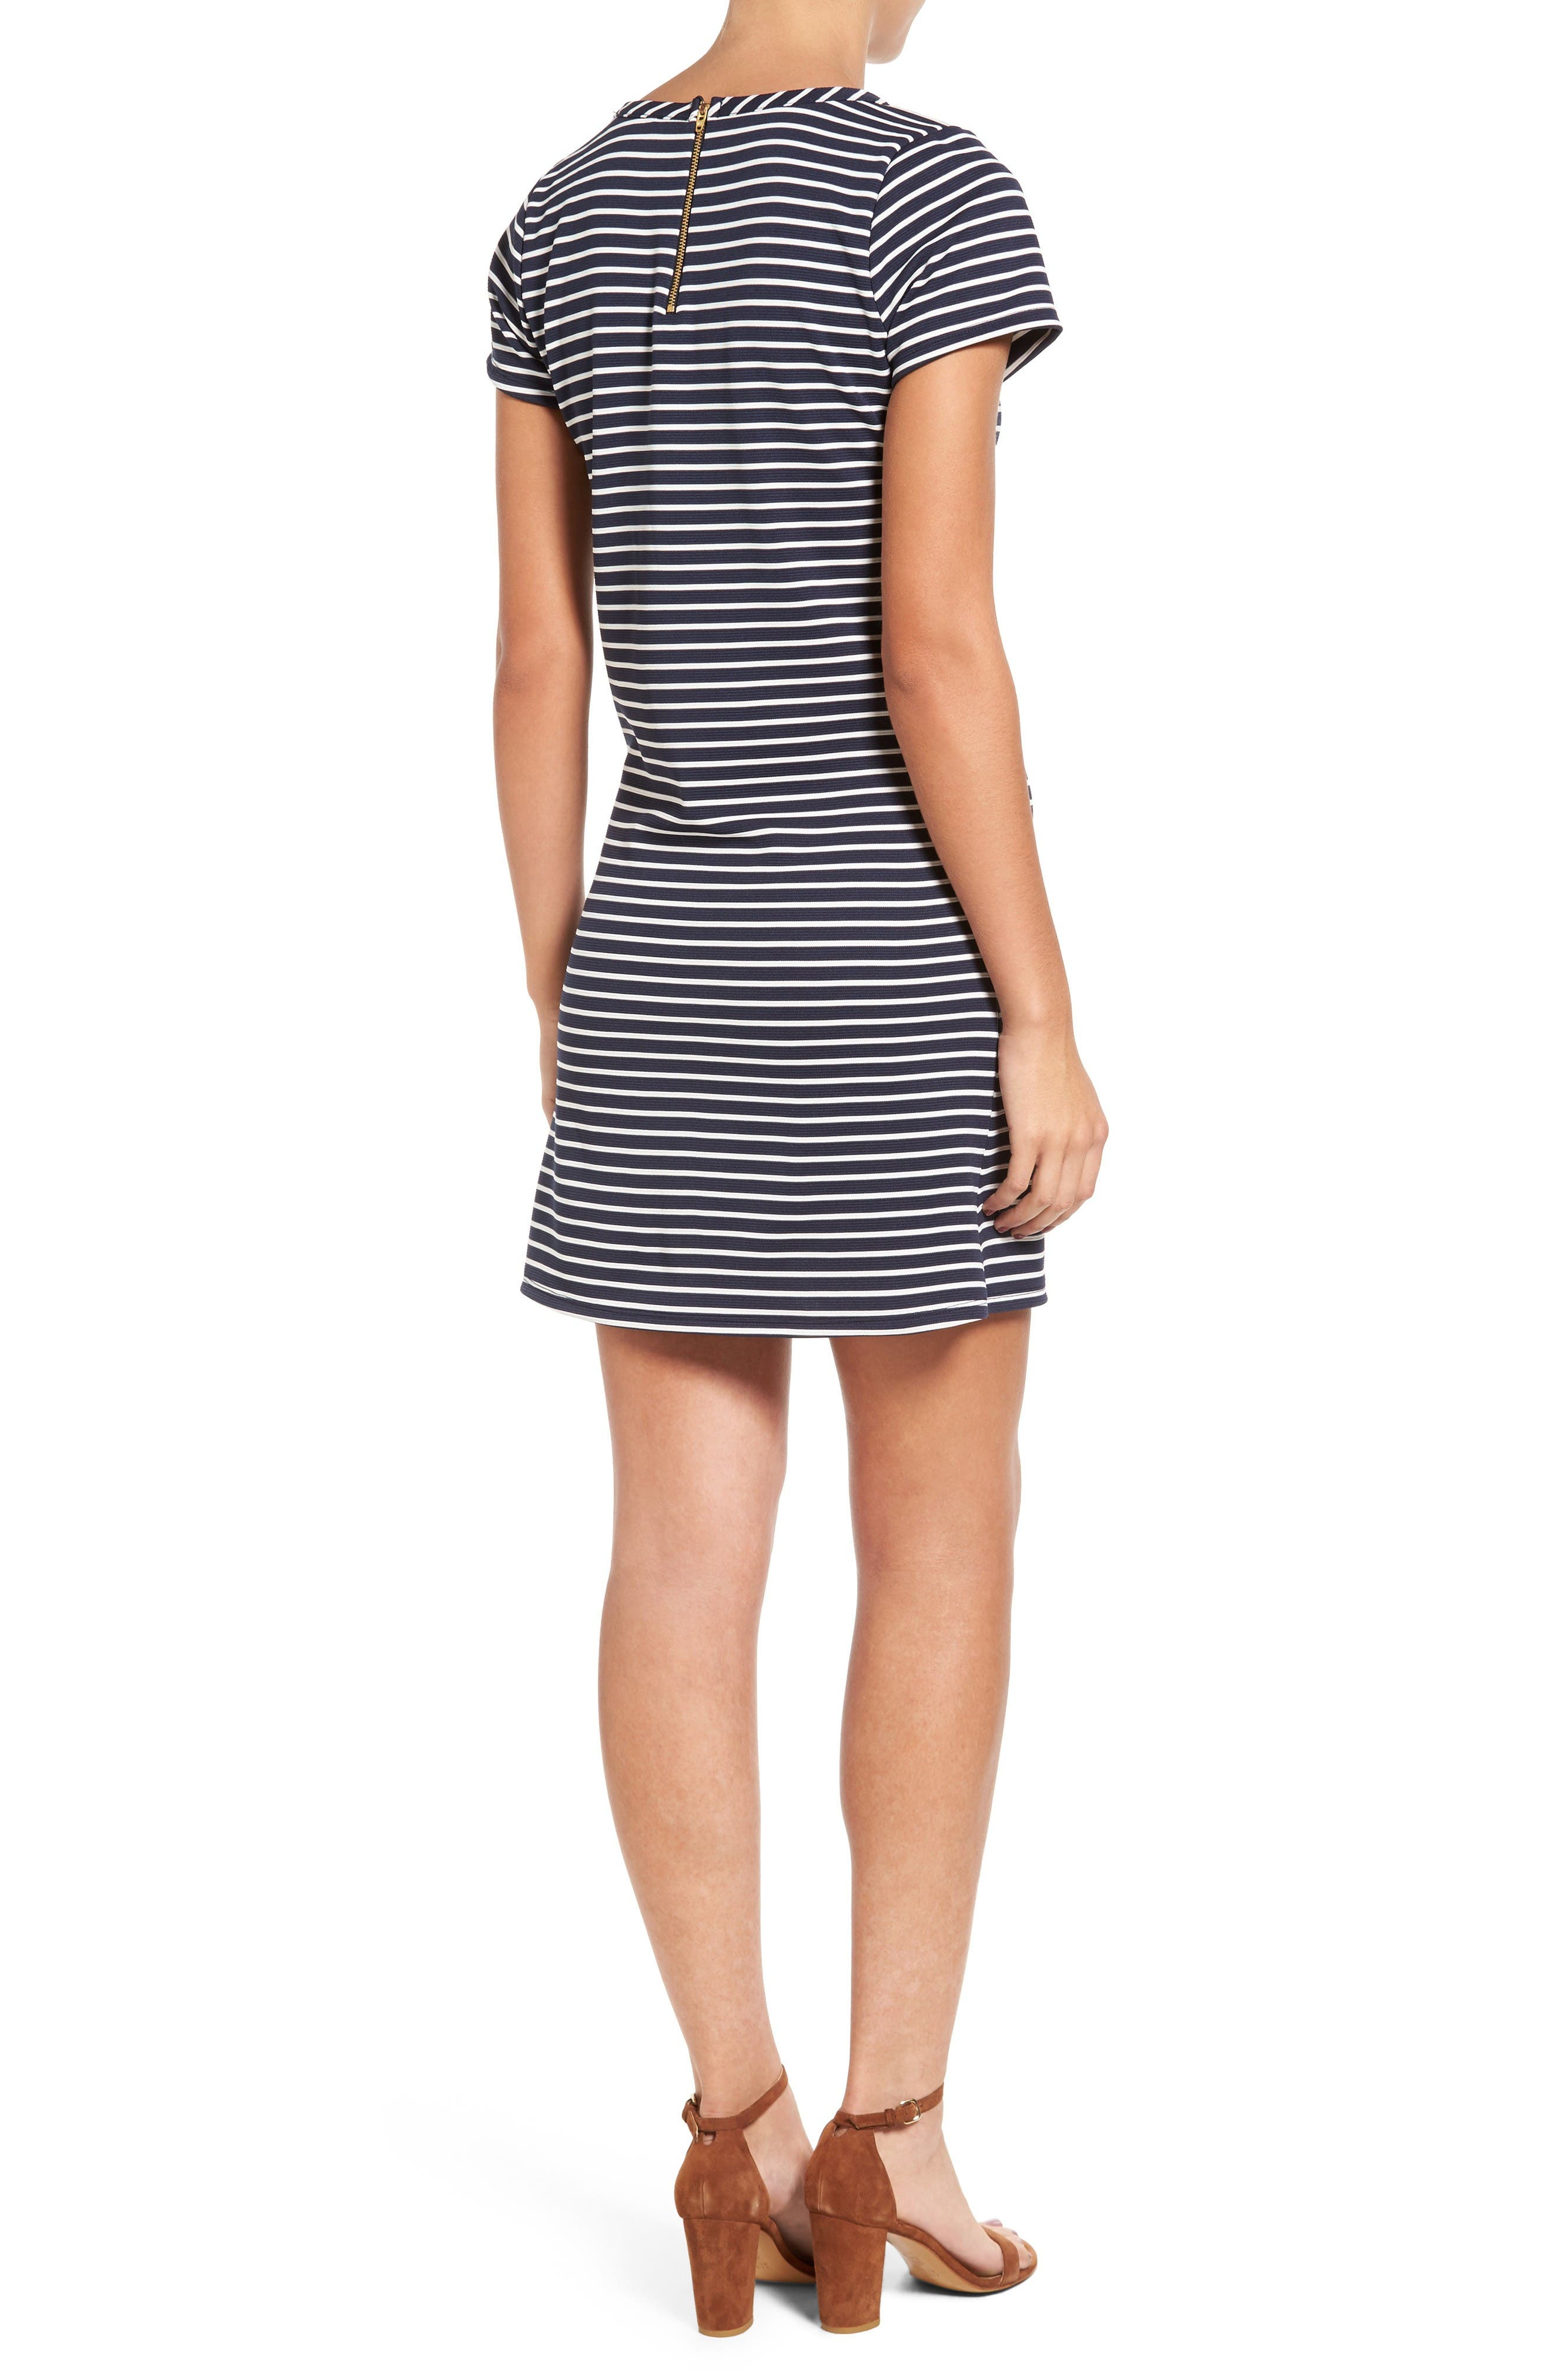 Alternate Image 2  - Loveappella Stripe Ottoman Shift Dress (Petite)